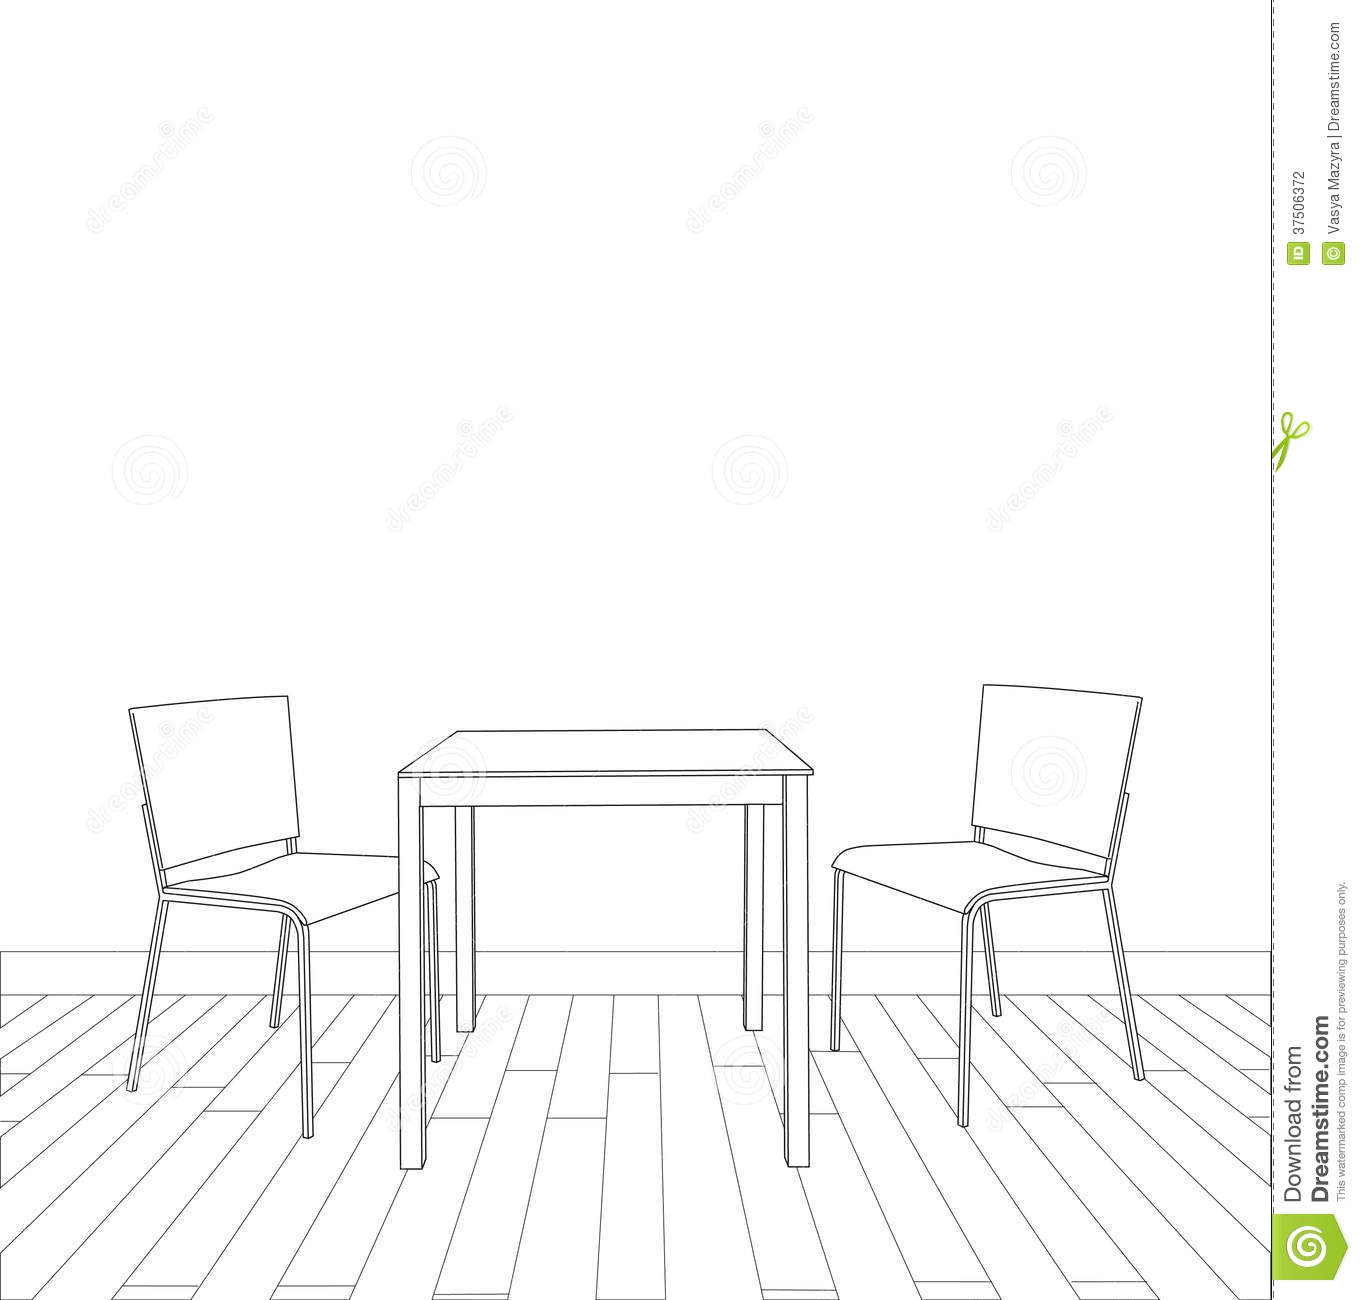 Modern House Sketch Vector Stock Images - Image: 23420754 - ^